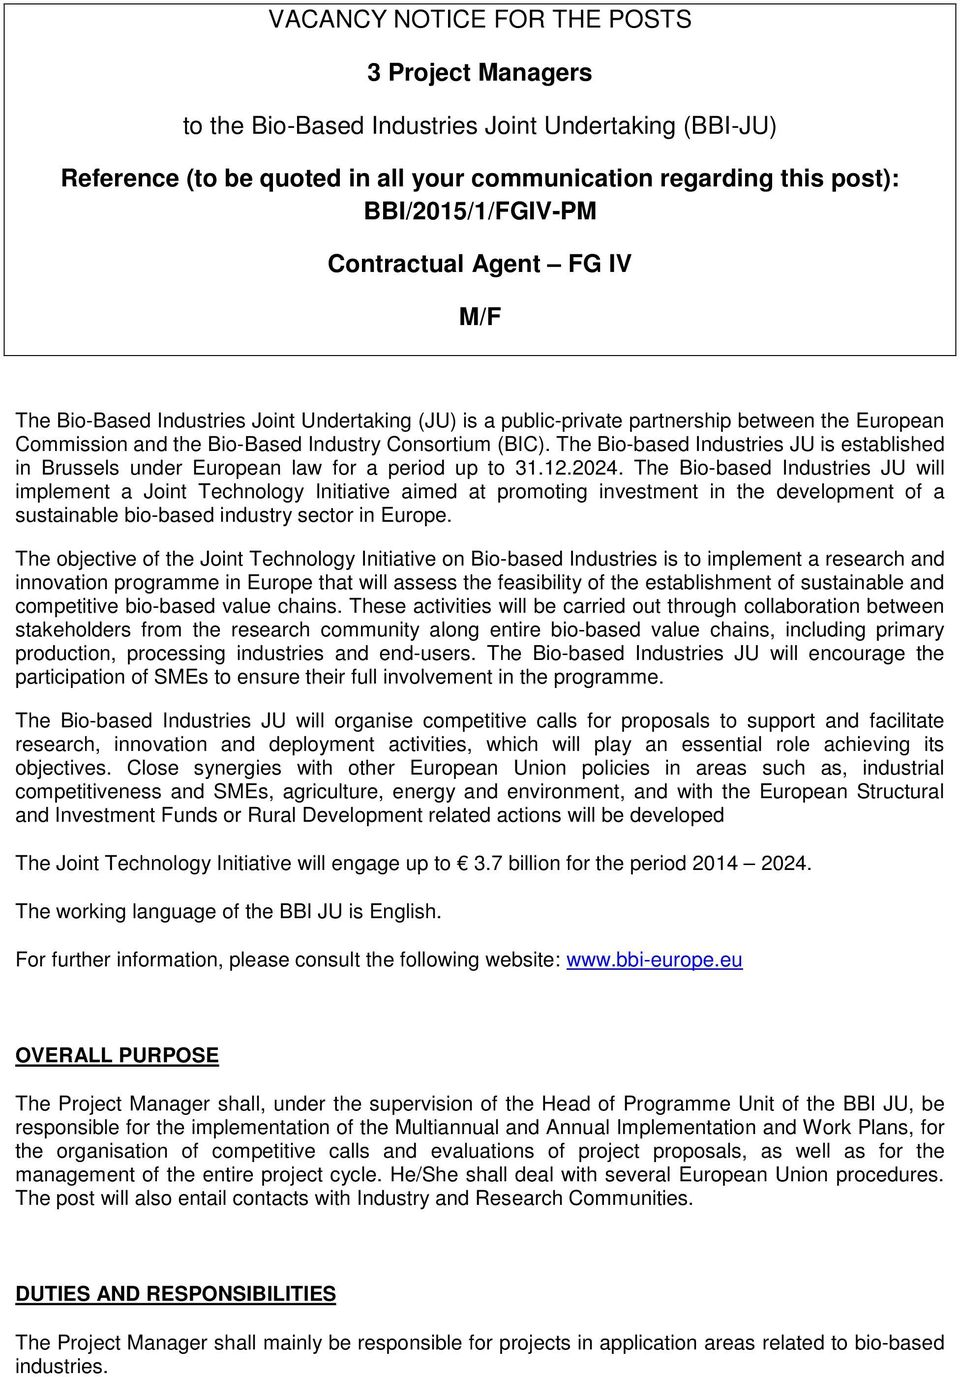 VACANCY NOTICE FOR THE POSTS  3 Project Managers  to the Bio-Based